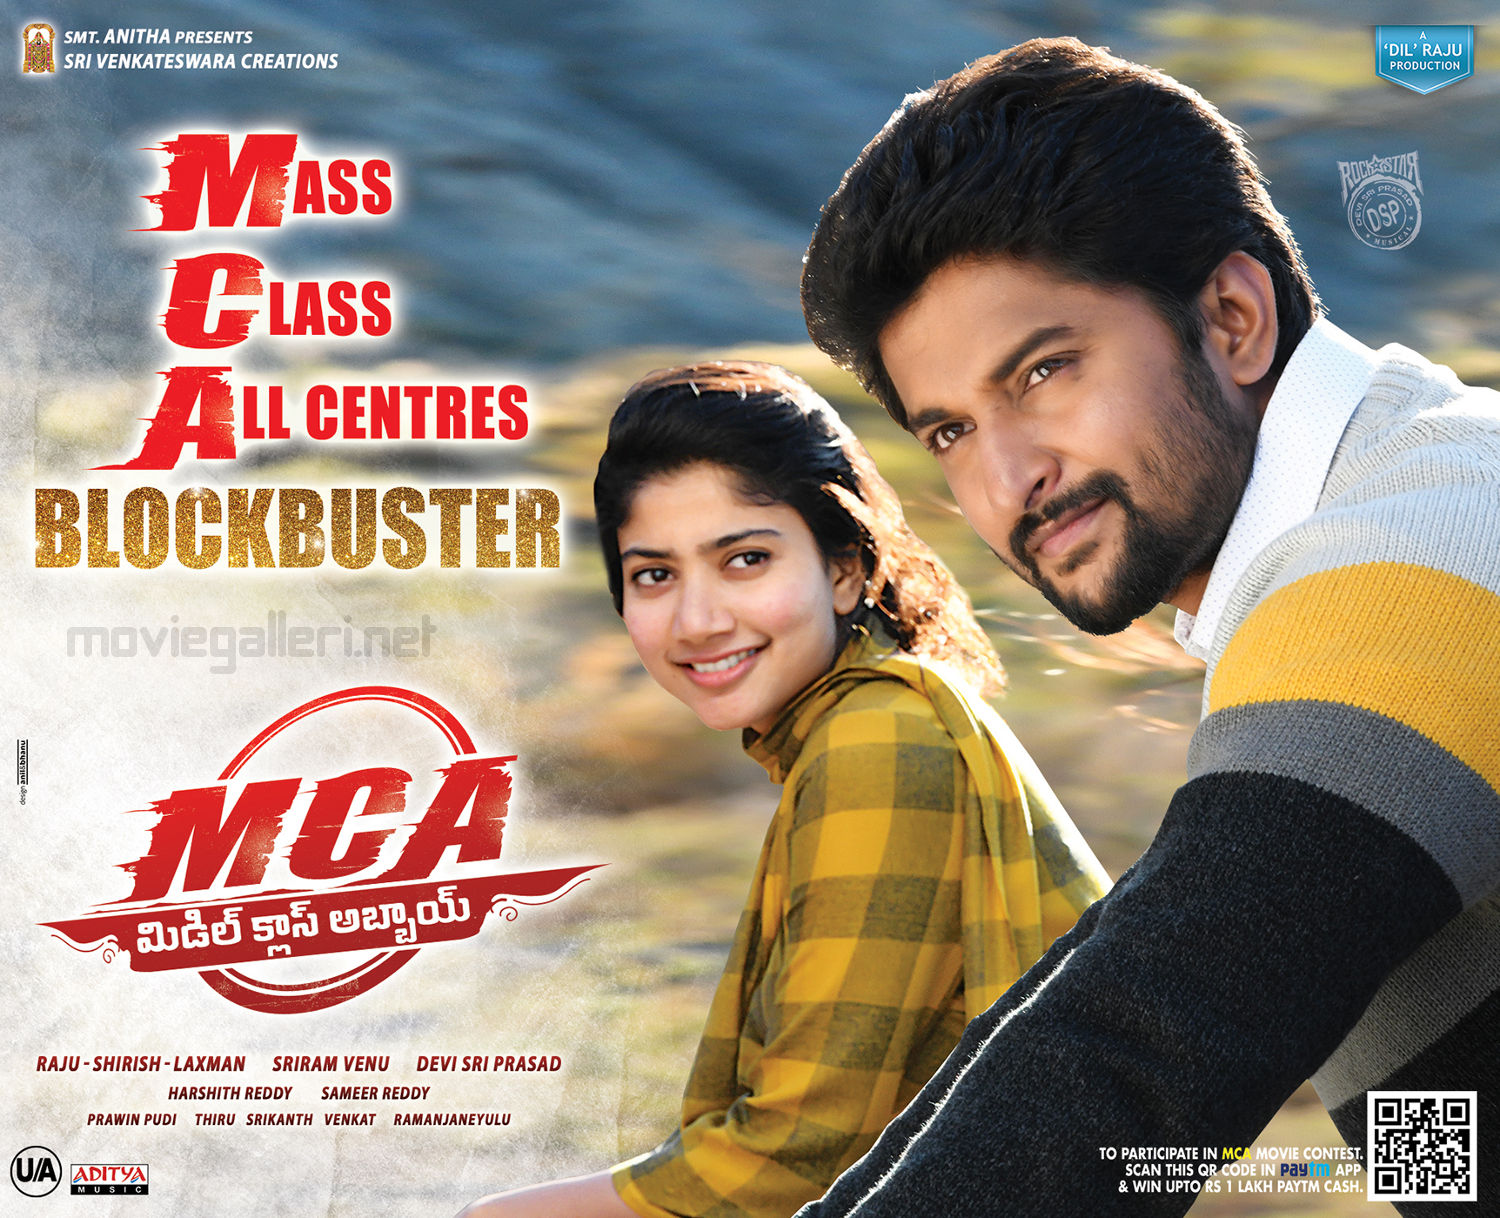 Sai Pallavi Nani MCA Movie Mass Class Allcentres Blockbuster Wallpapers